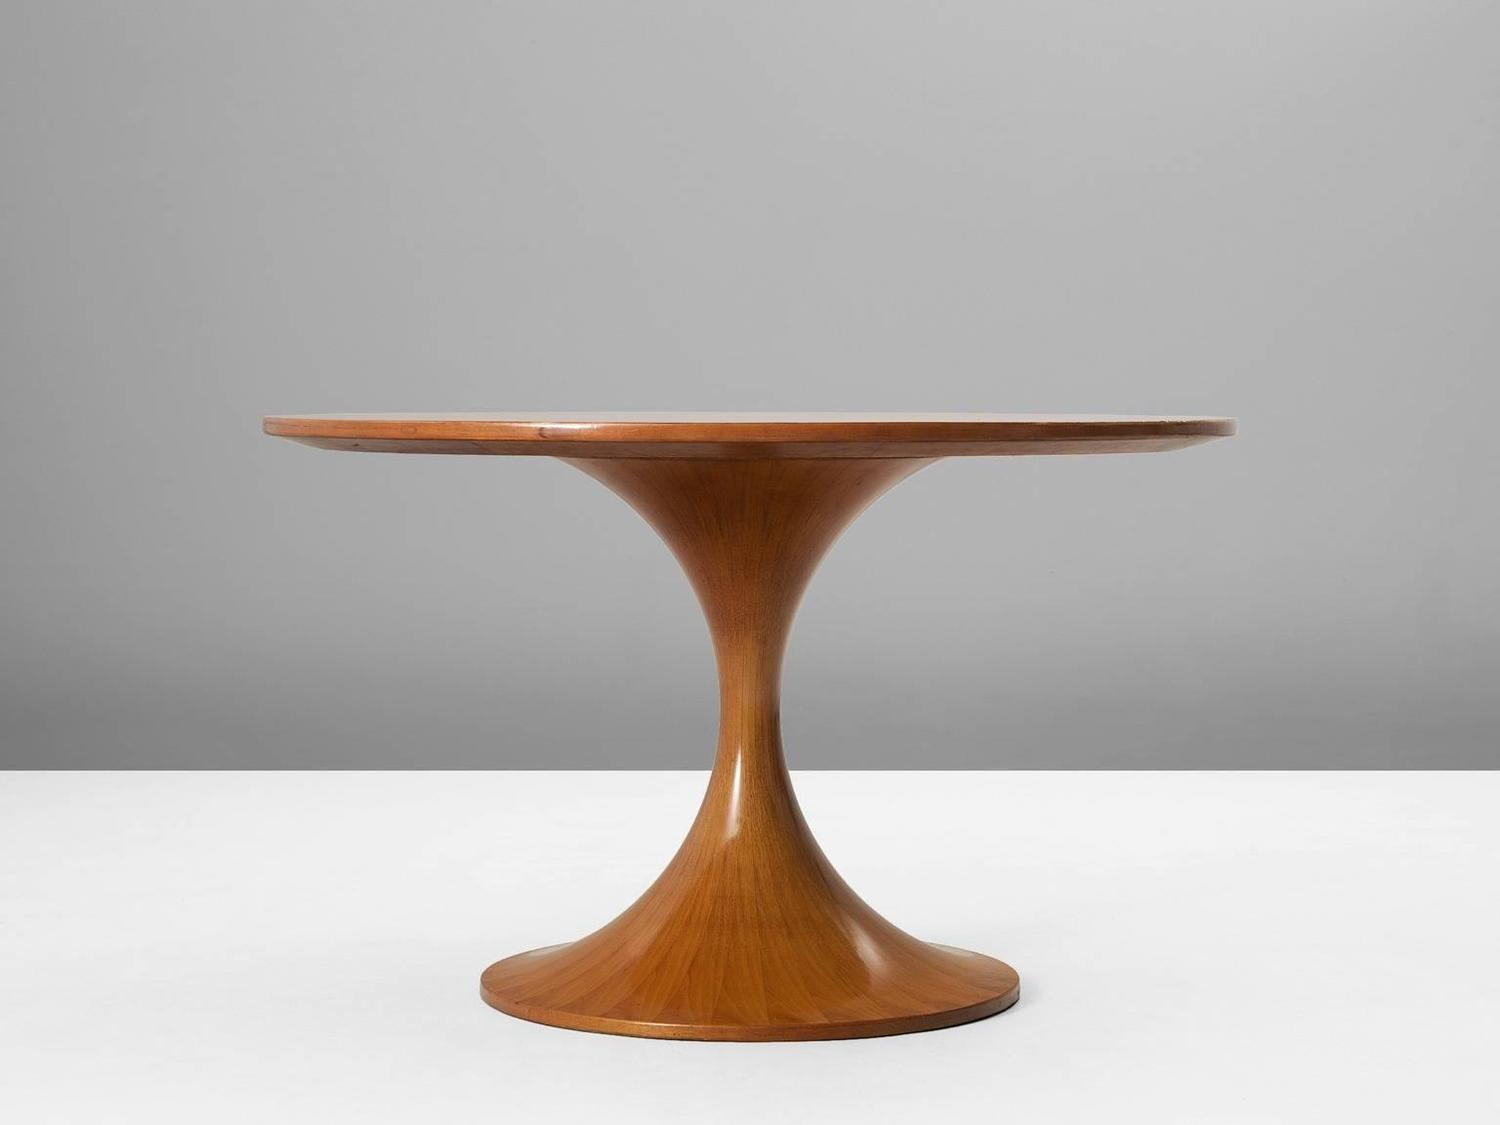 luigi massoni wooden round pedestal dining table for sale at 1stdibs